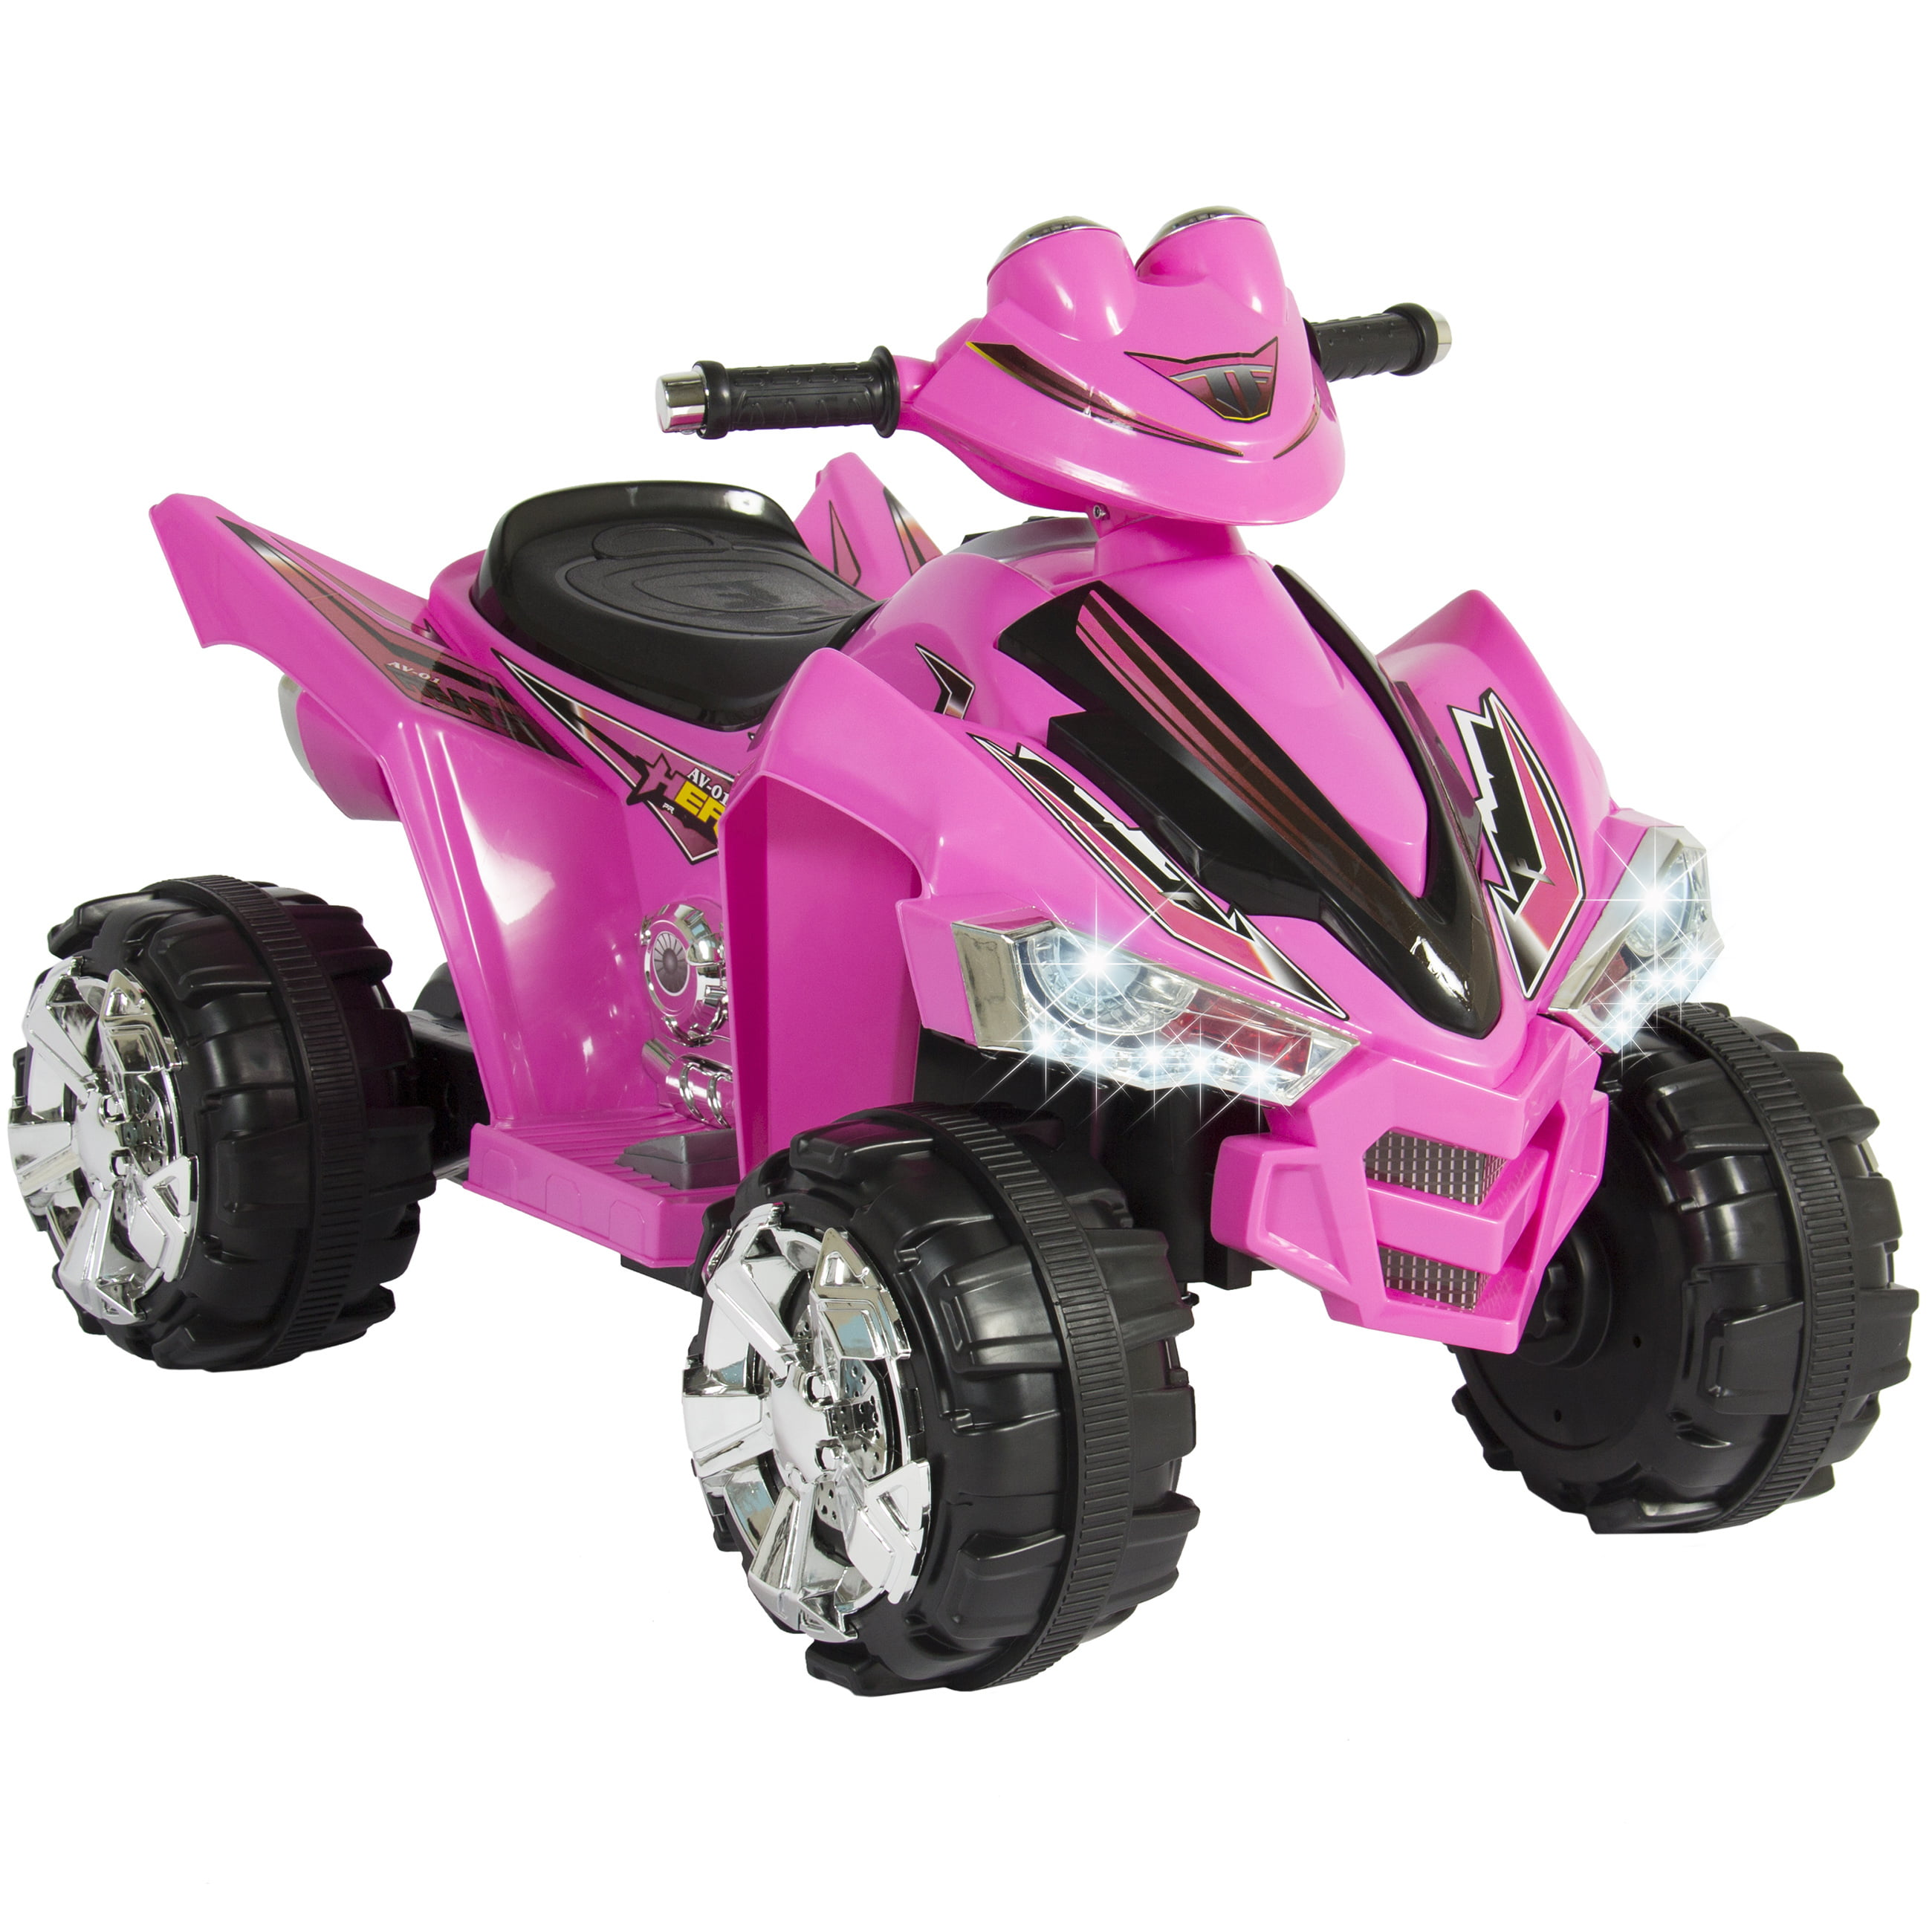 Toy 4 Wheelers For 8 Year Old Boys : Pink four wheelers for kids imgkid the image